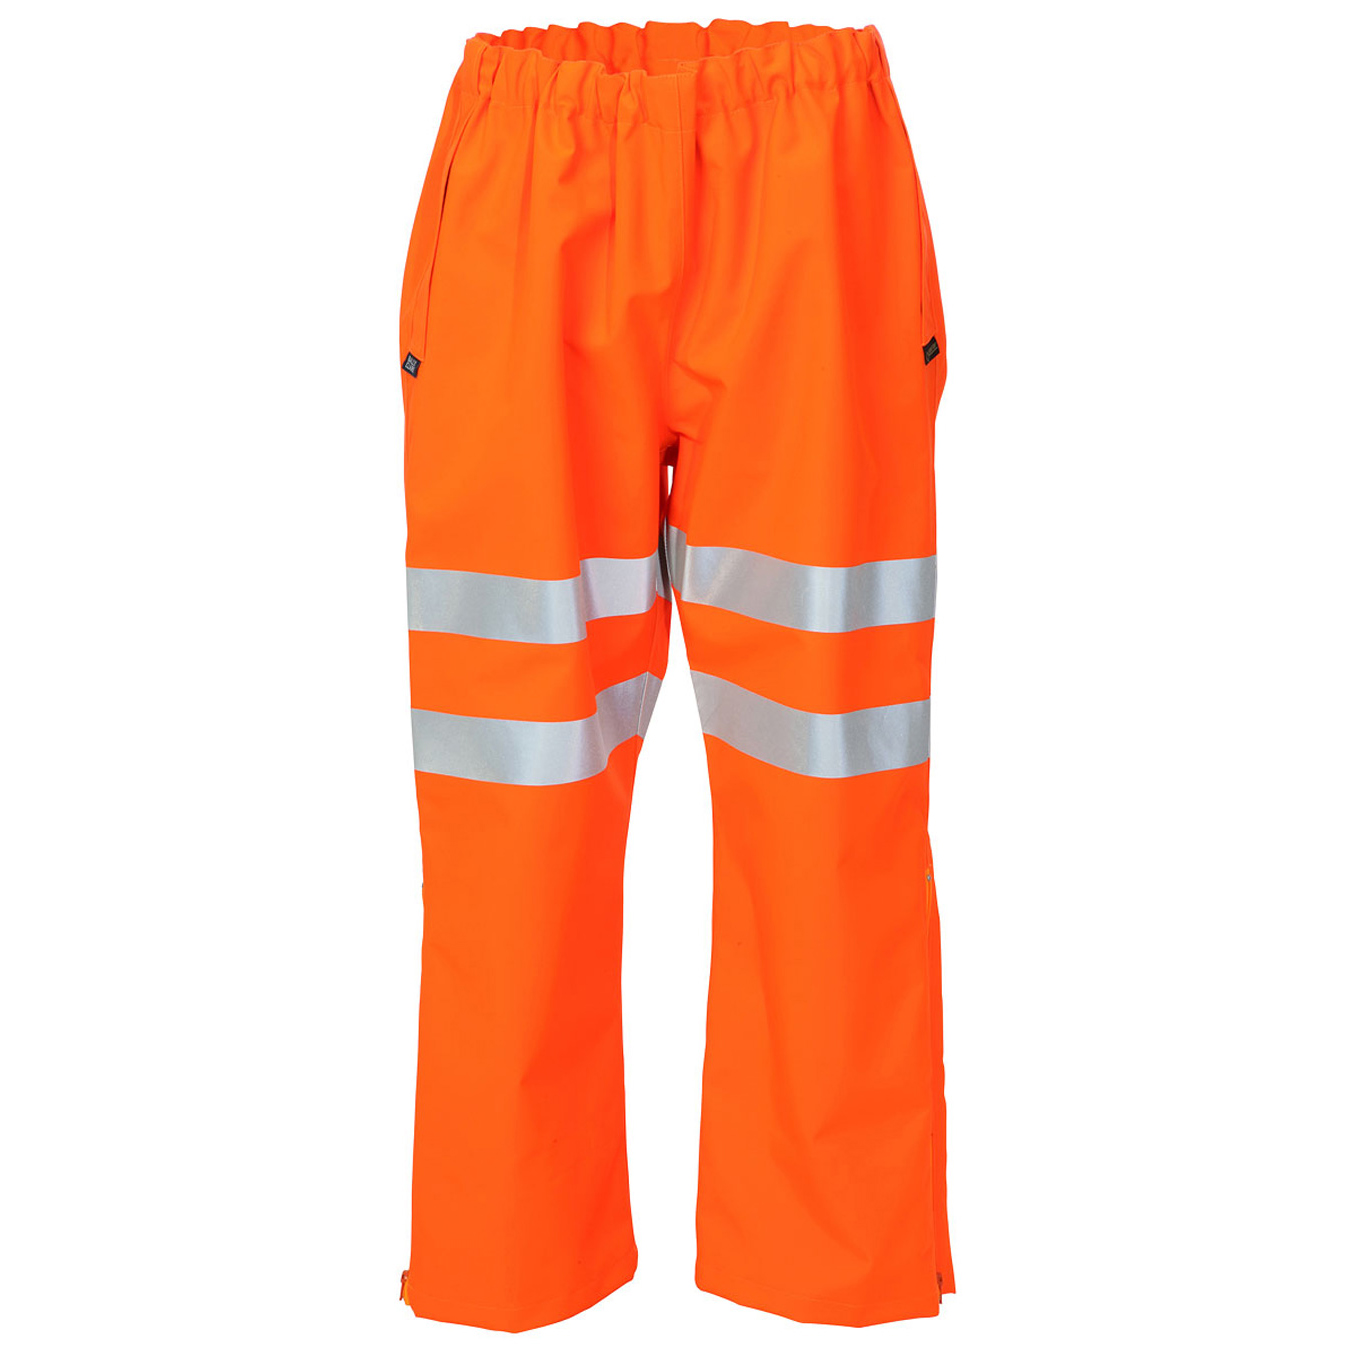 Body Protection BSeen Gore-Tex Over Trousers Foul Weather 2XL Orange Ref GTHV160ORXXL *Up to 3 Day Leadtime*